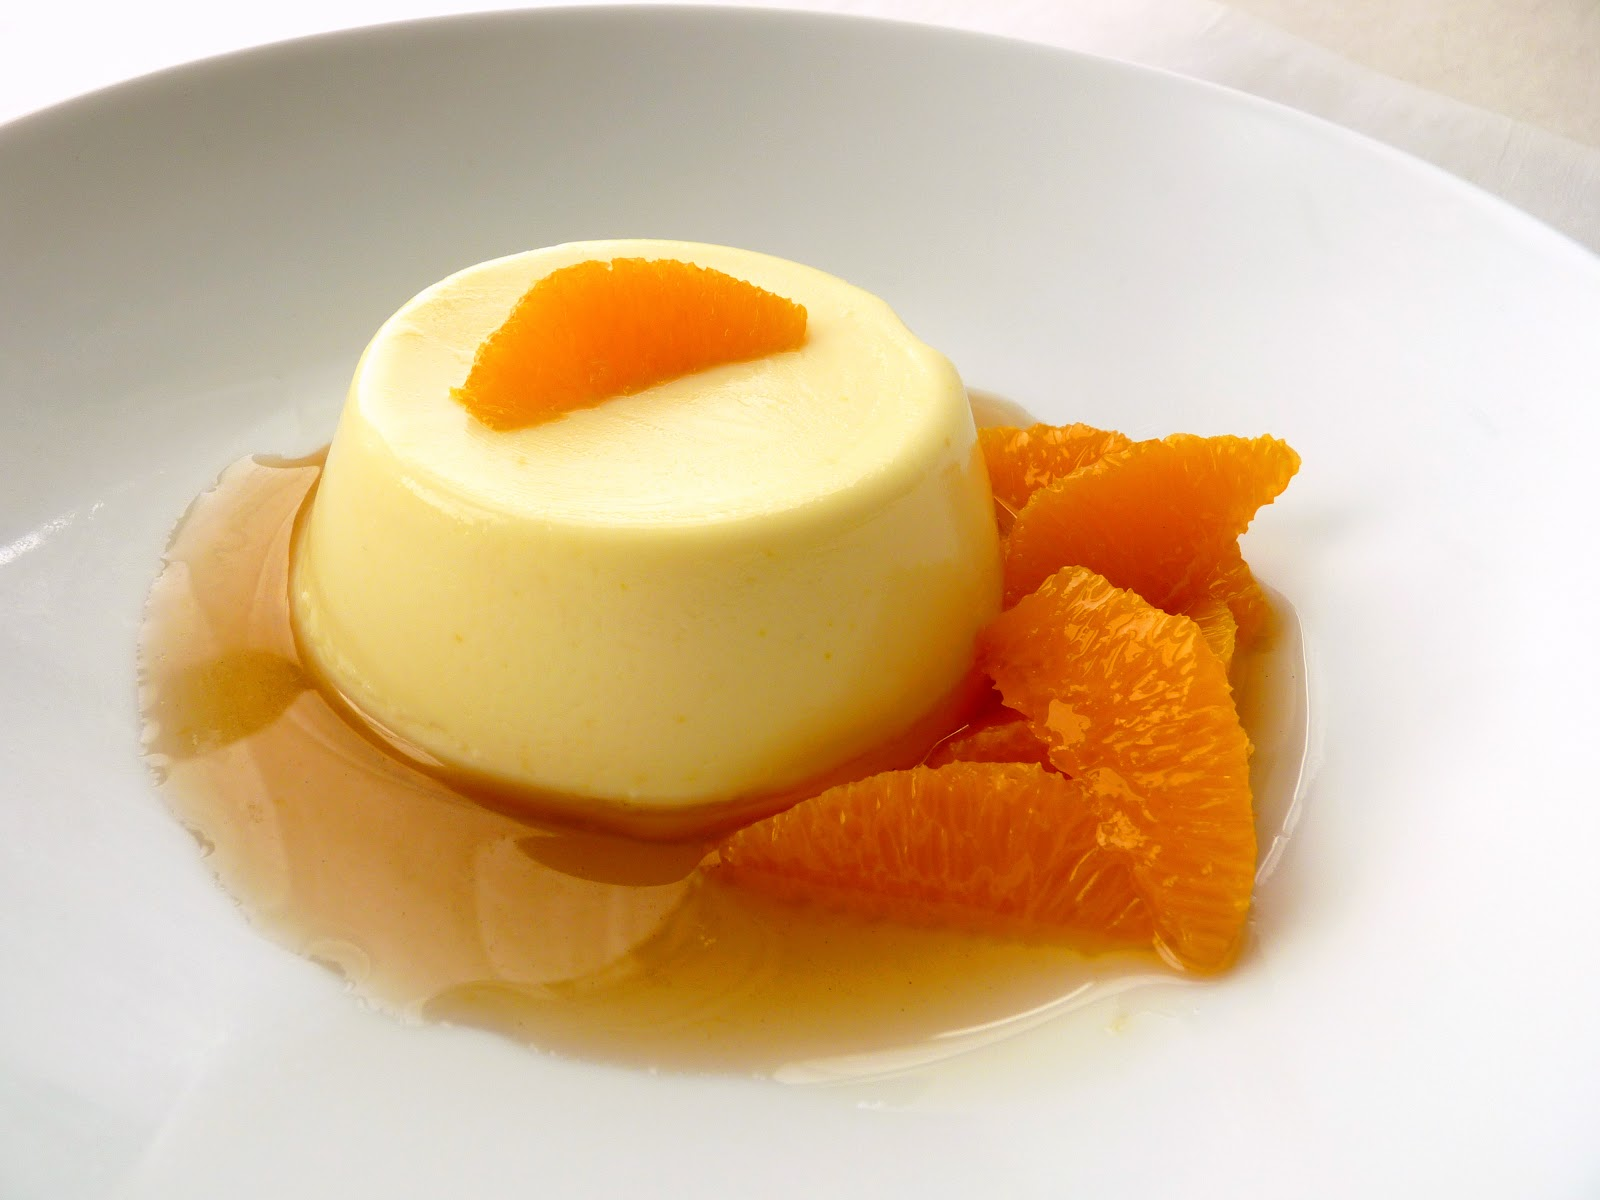 pastry studio: Orange Panna Cotta with Earl Grey Cardamom Sauce